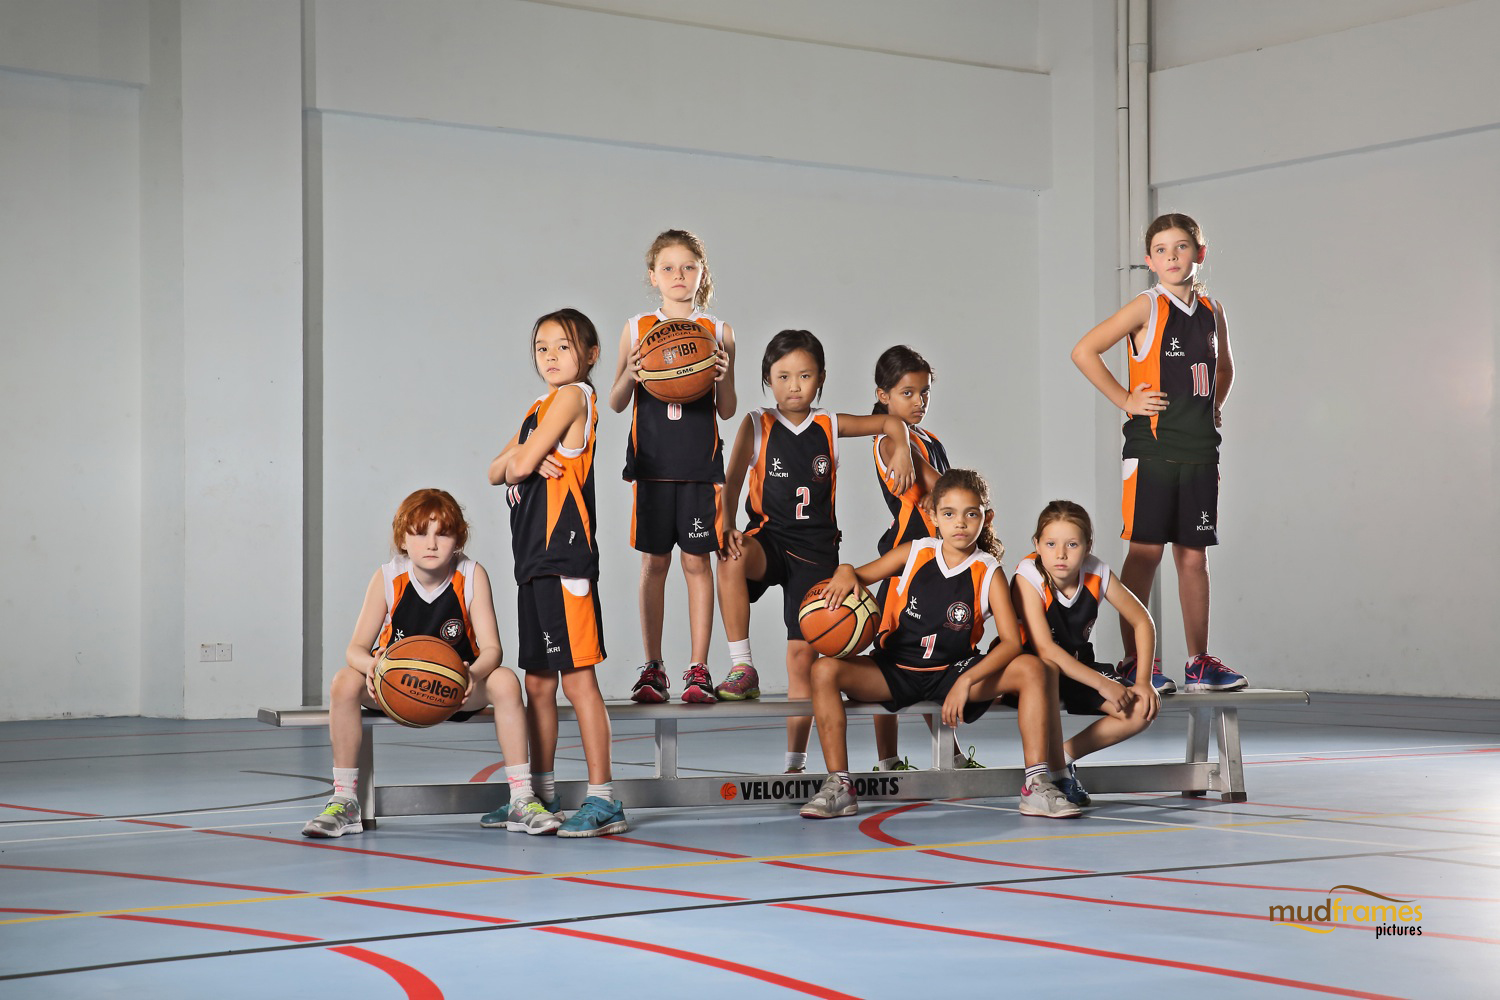 The British International School Under 9 Girls Benchball Team